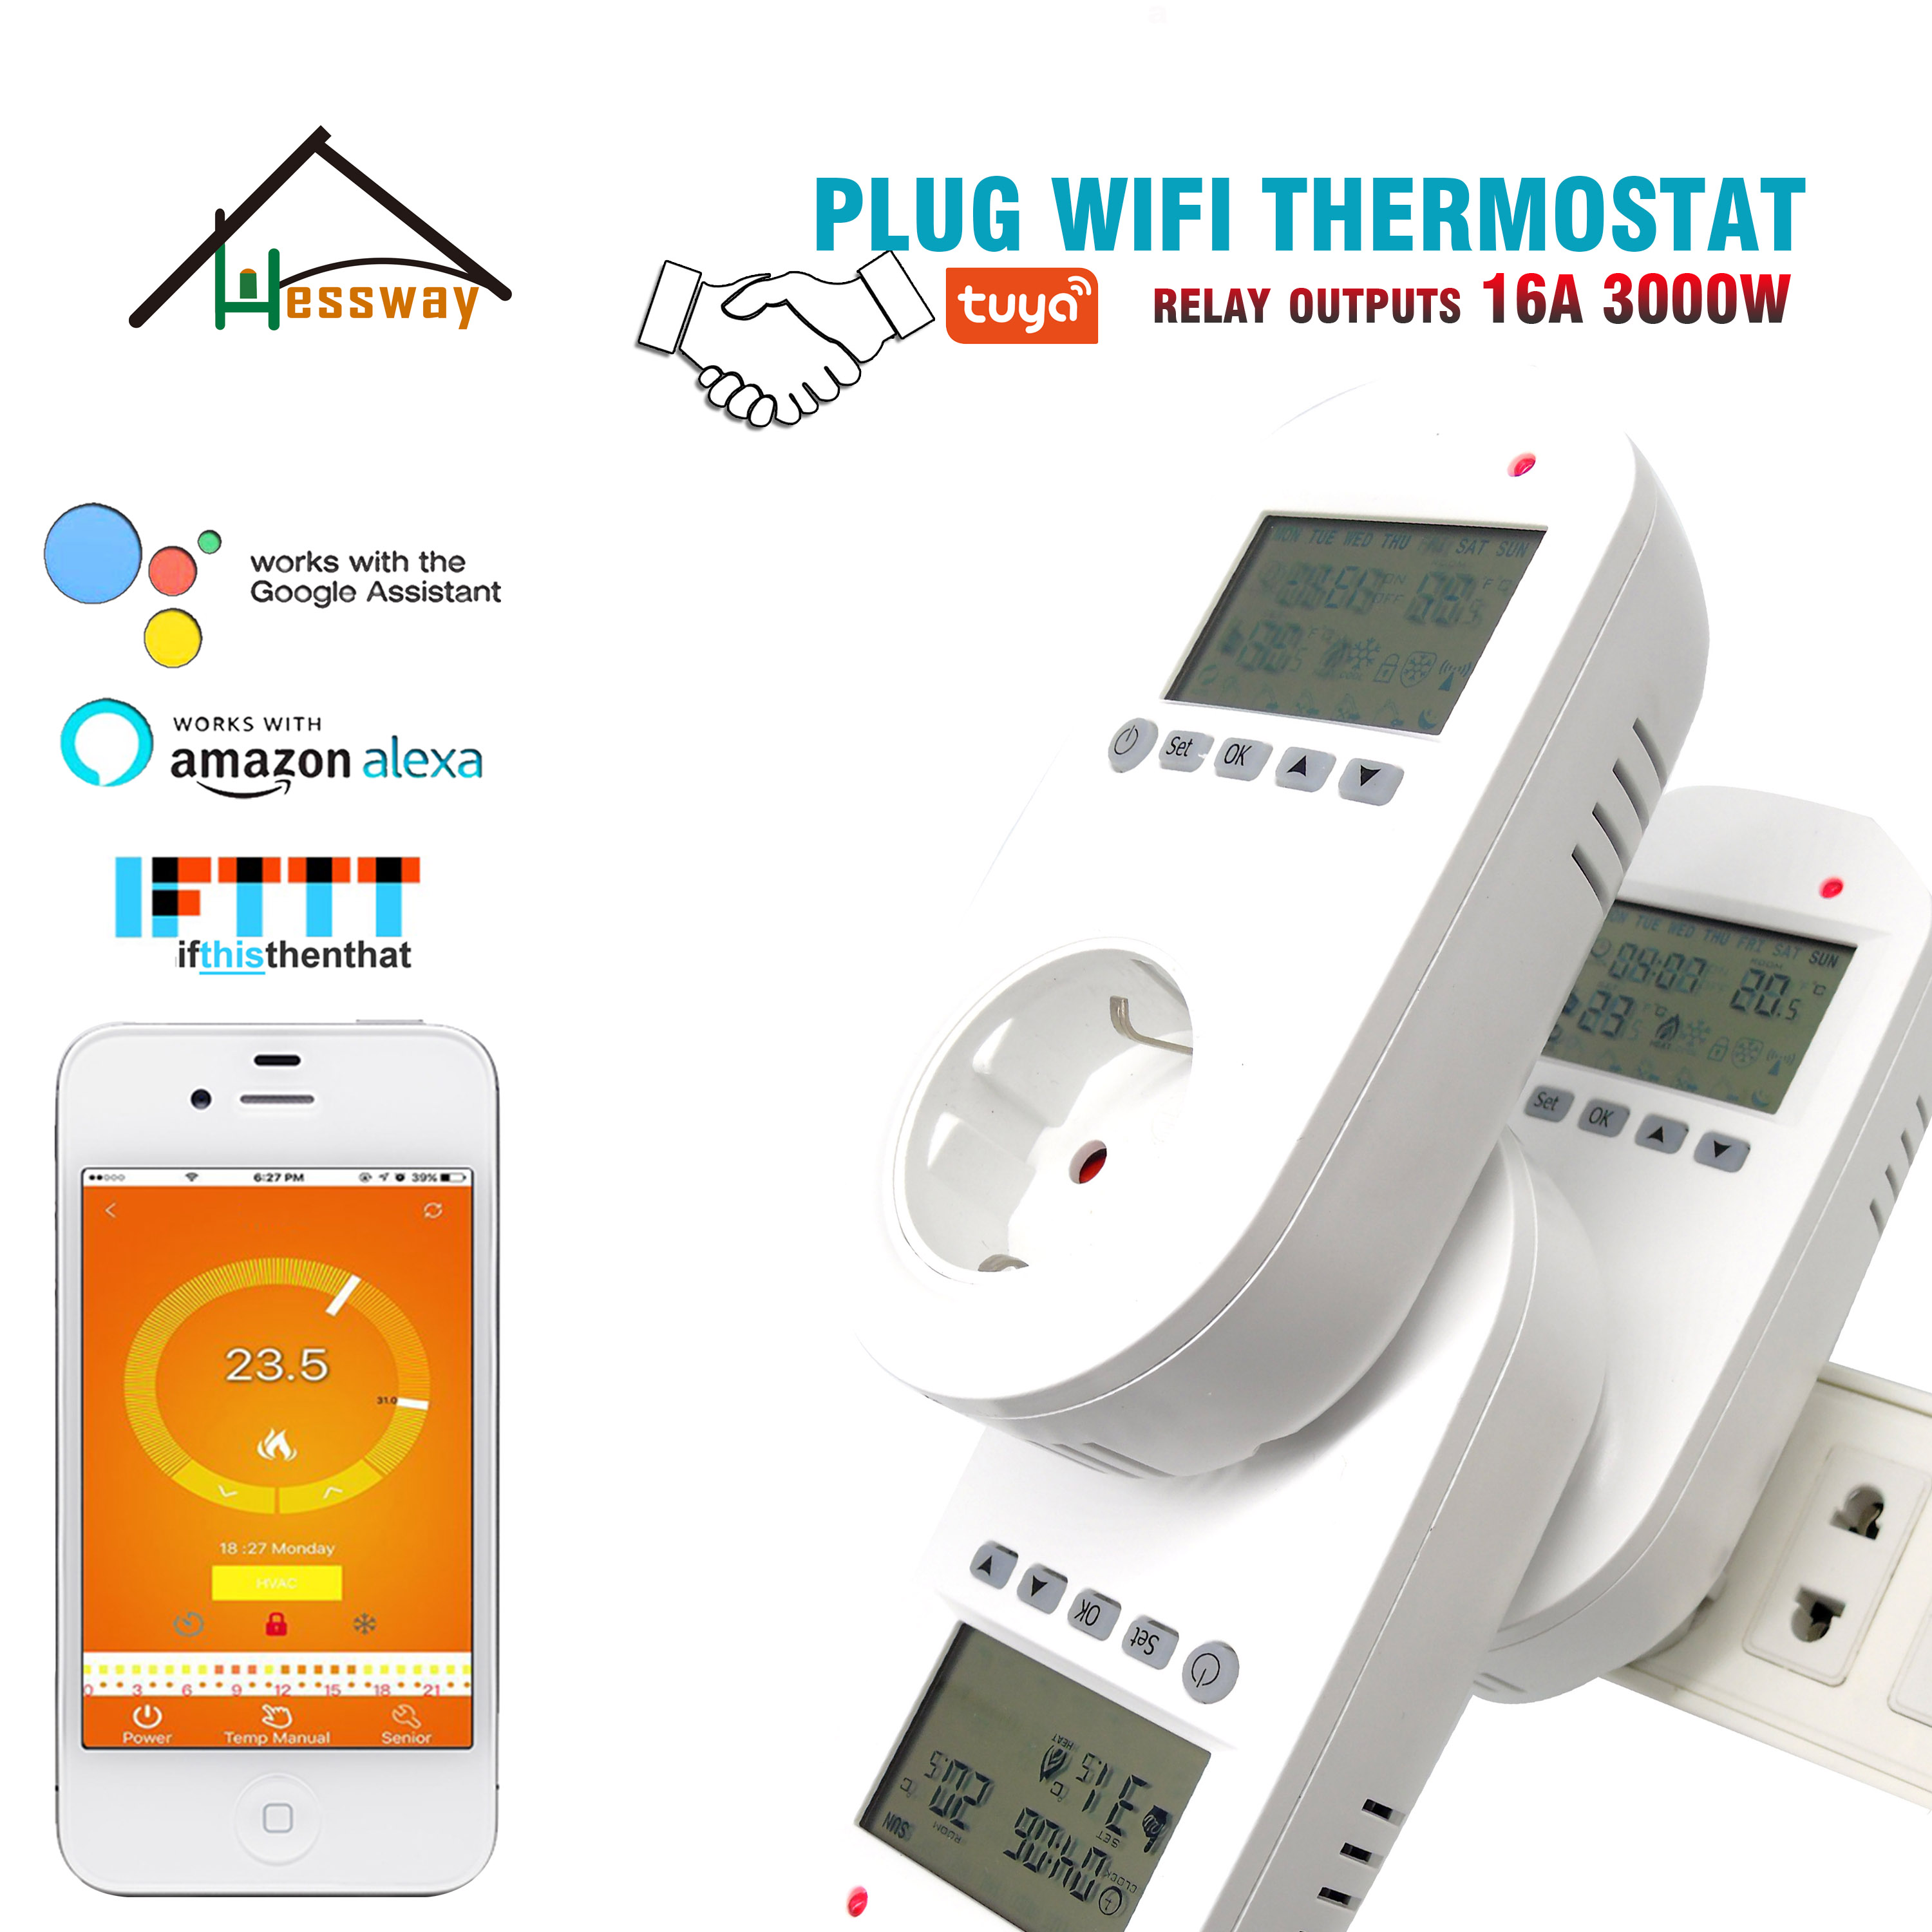 HESSWAY TUYA 16A Smart Plug EU Thermostat Wifi For Electric Floor Heating